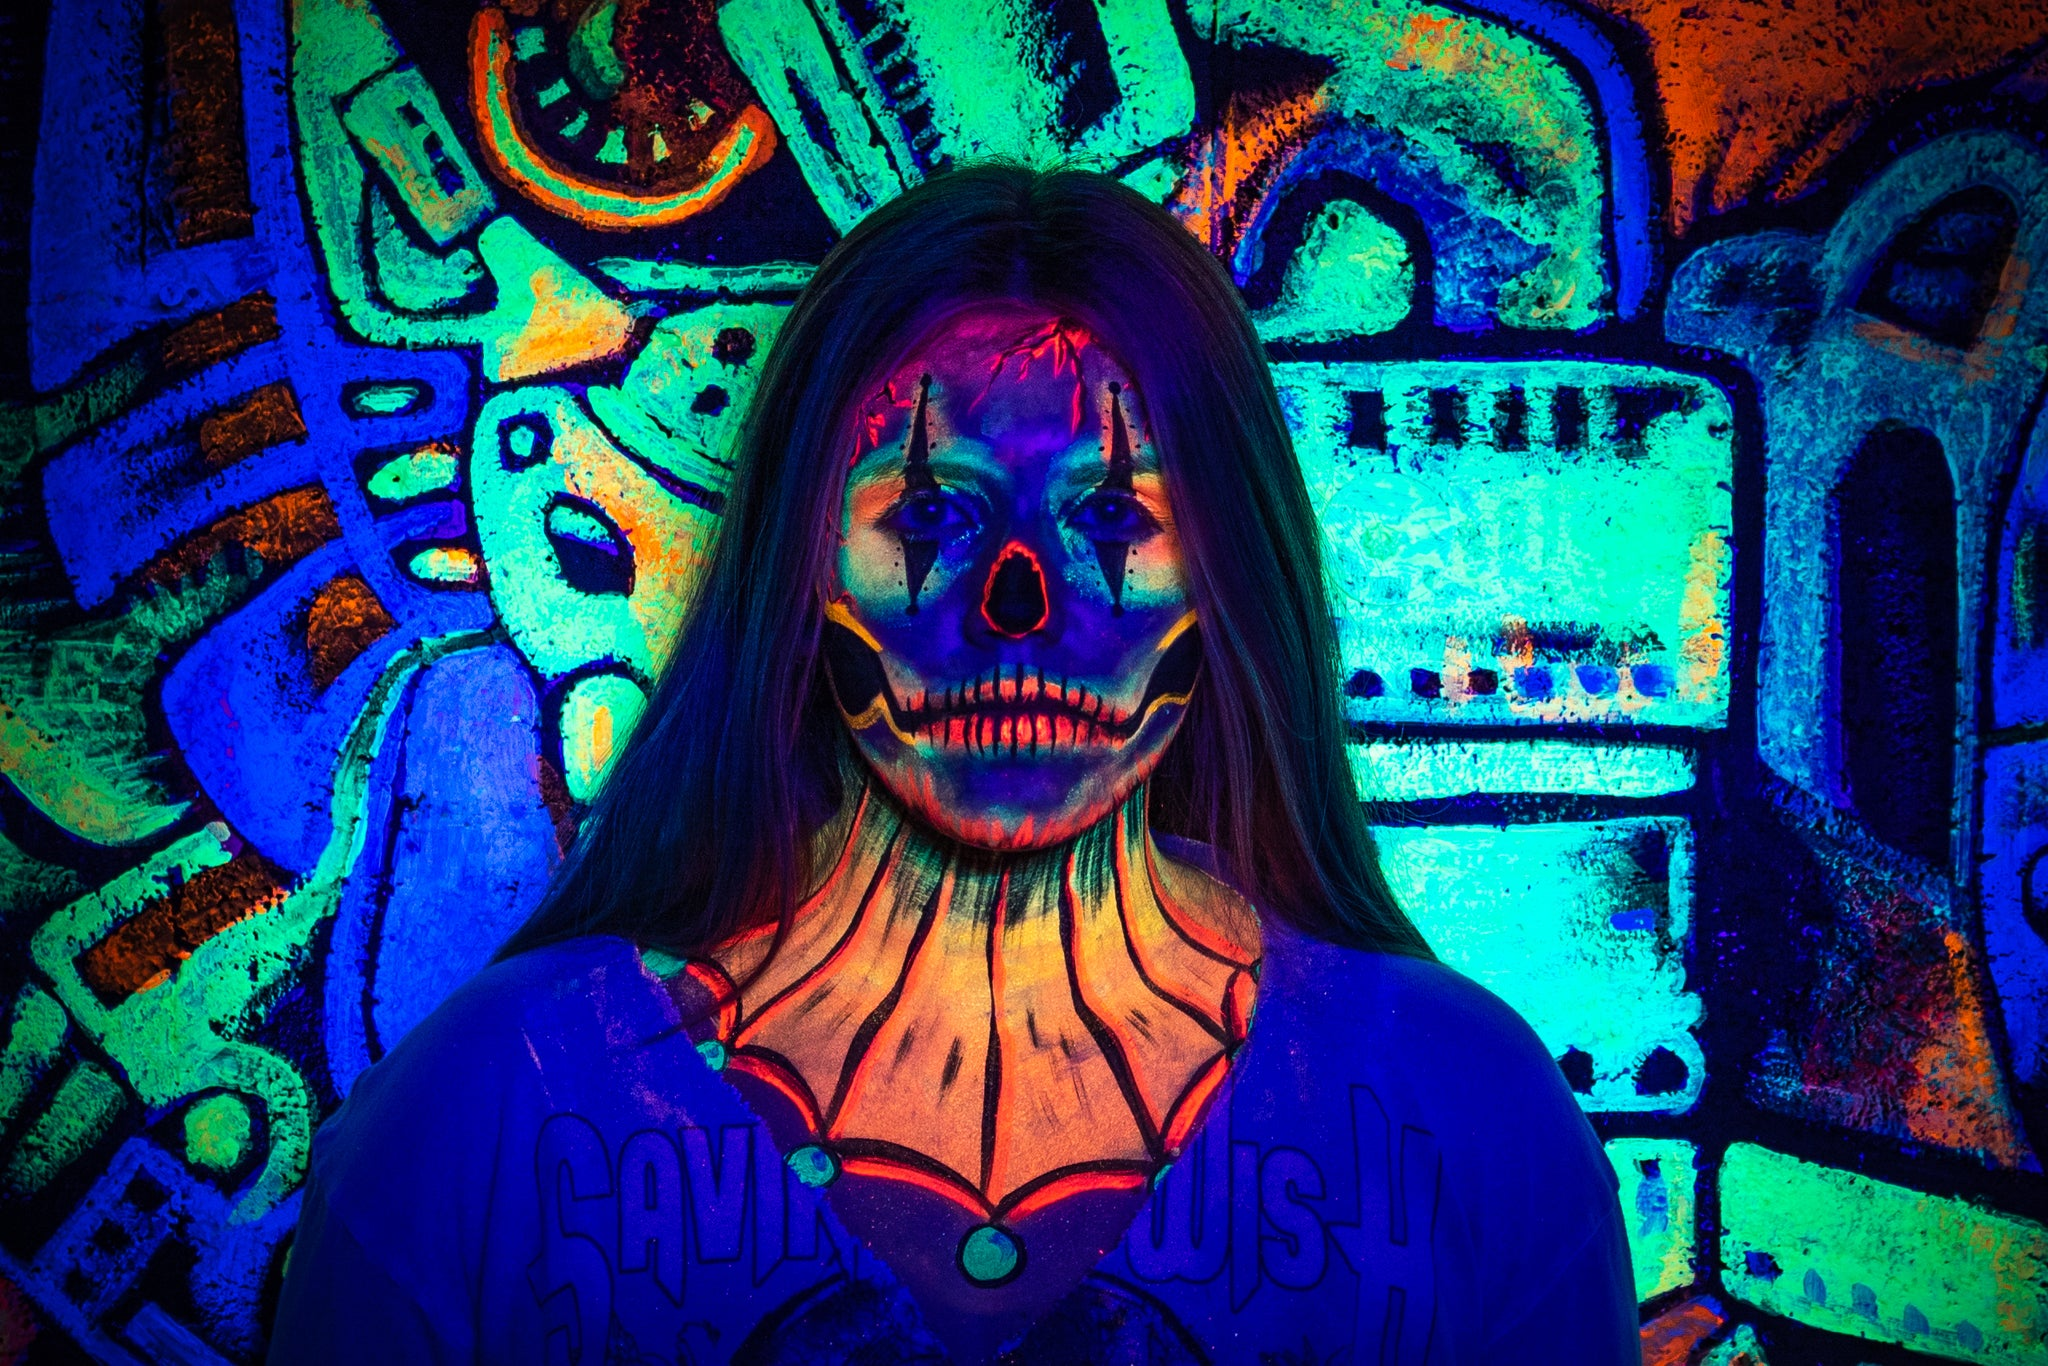 Completed Skull-Clown face paint in UV black light effects.